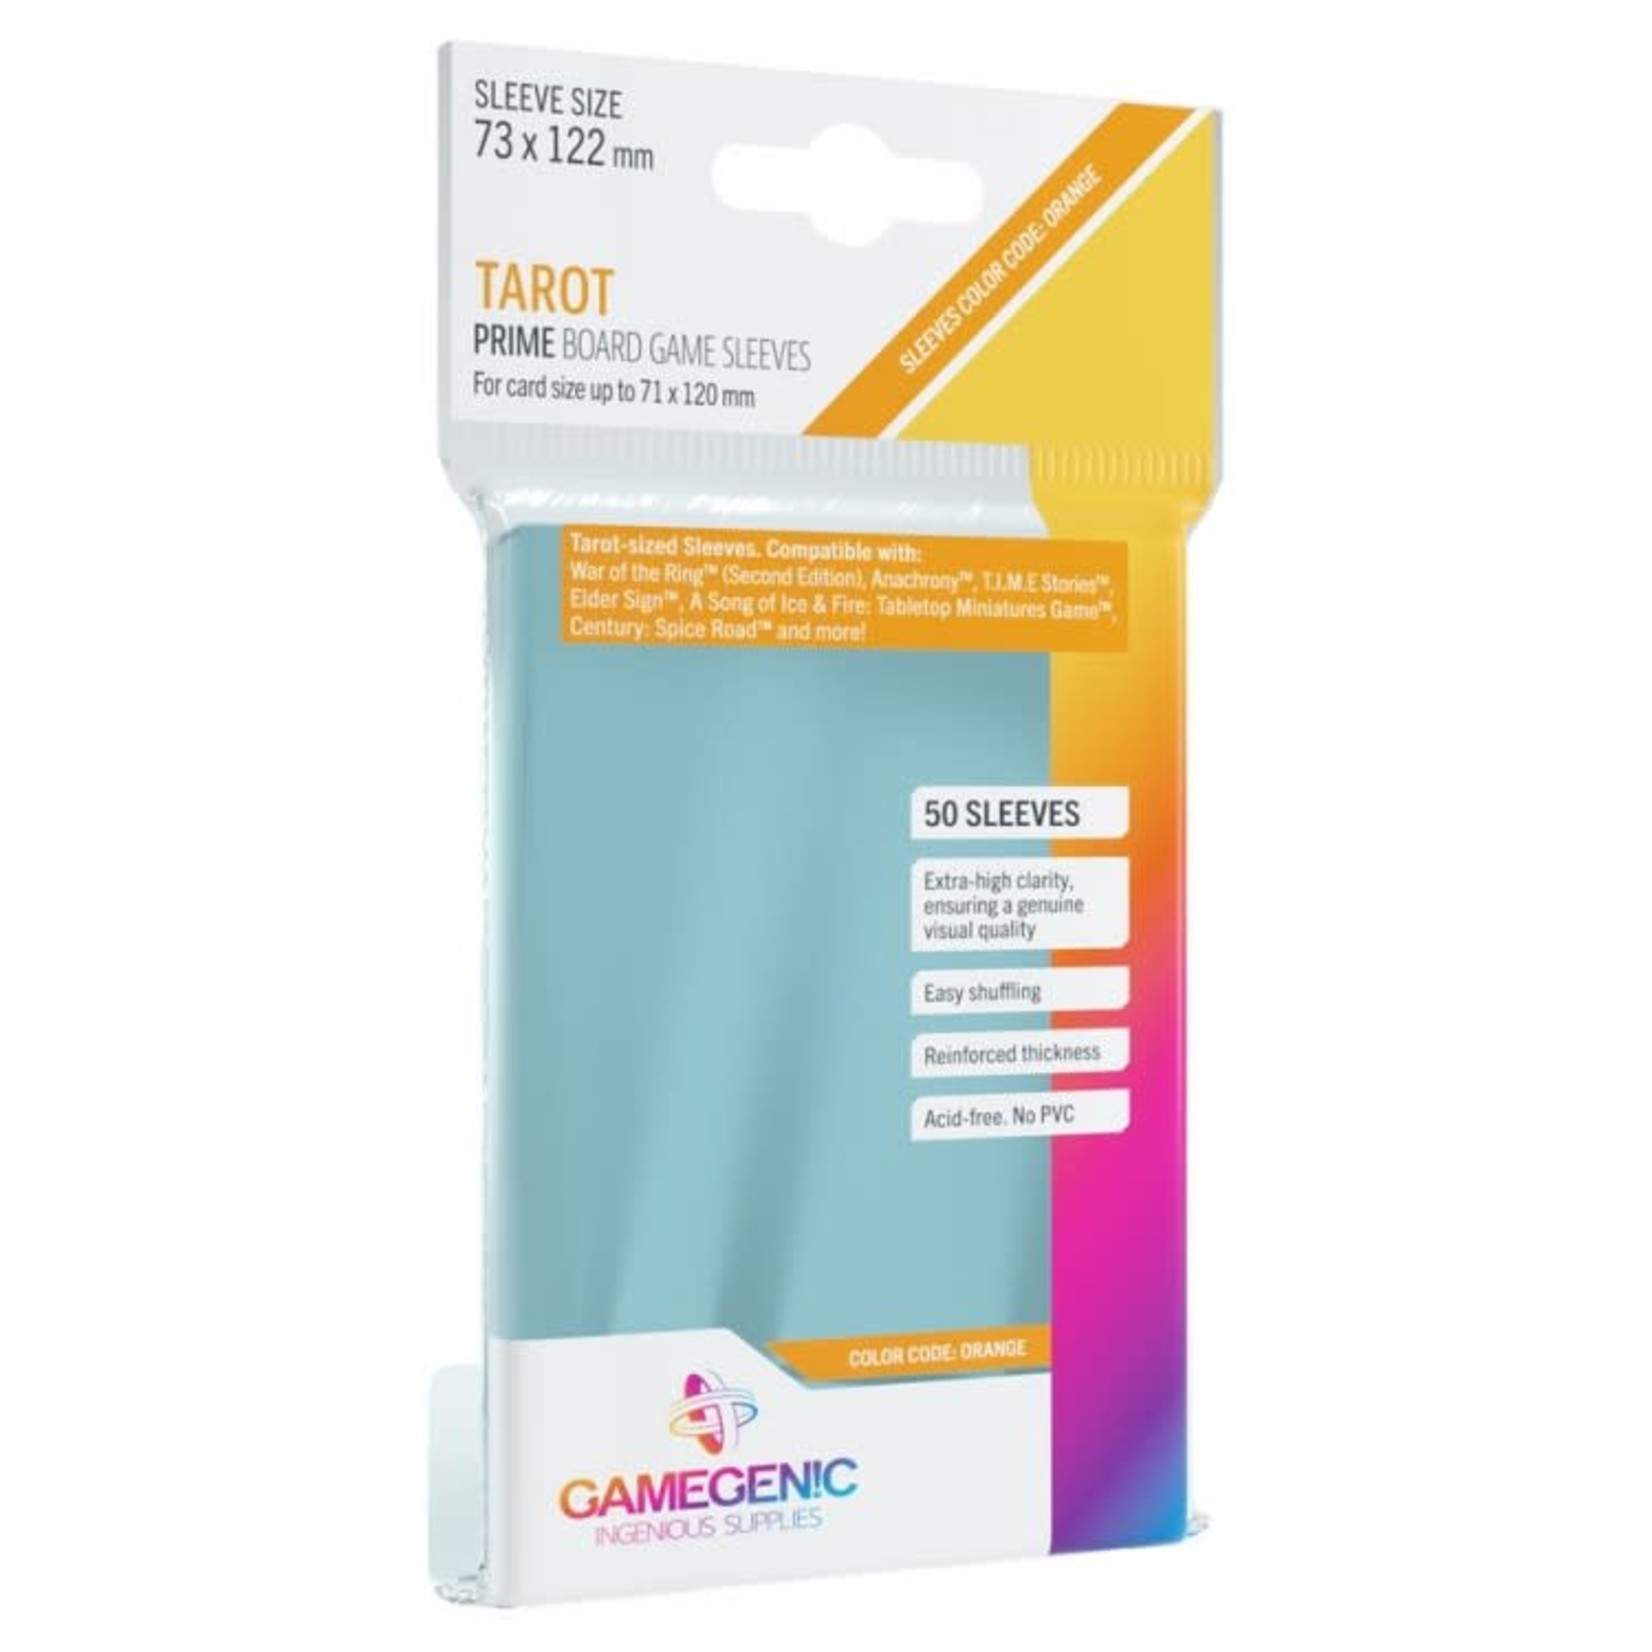 Gamegenic Gamegenic Sleeves: Tarot PRIME - 50 count (73x122mm)